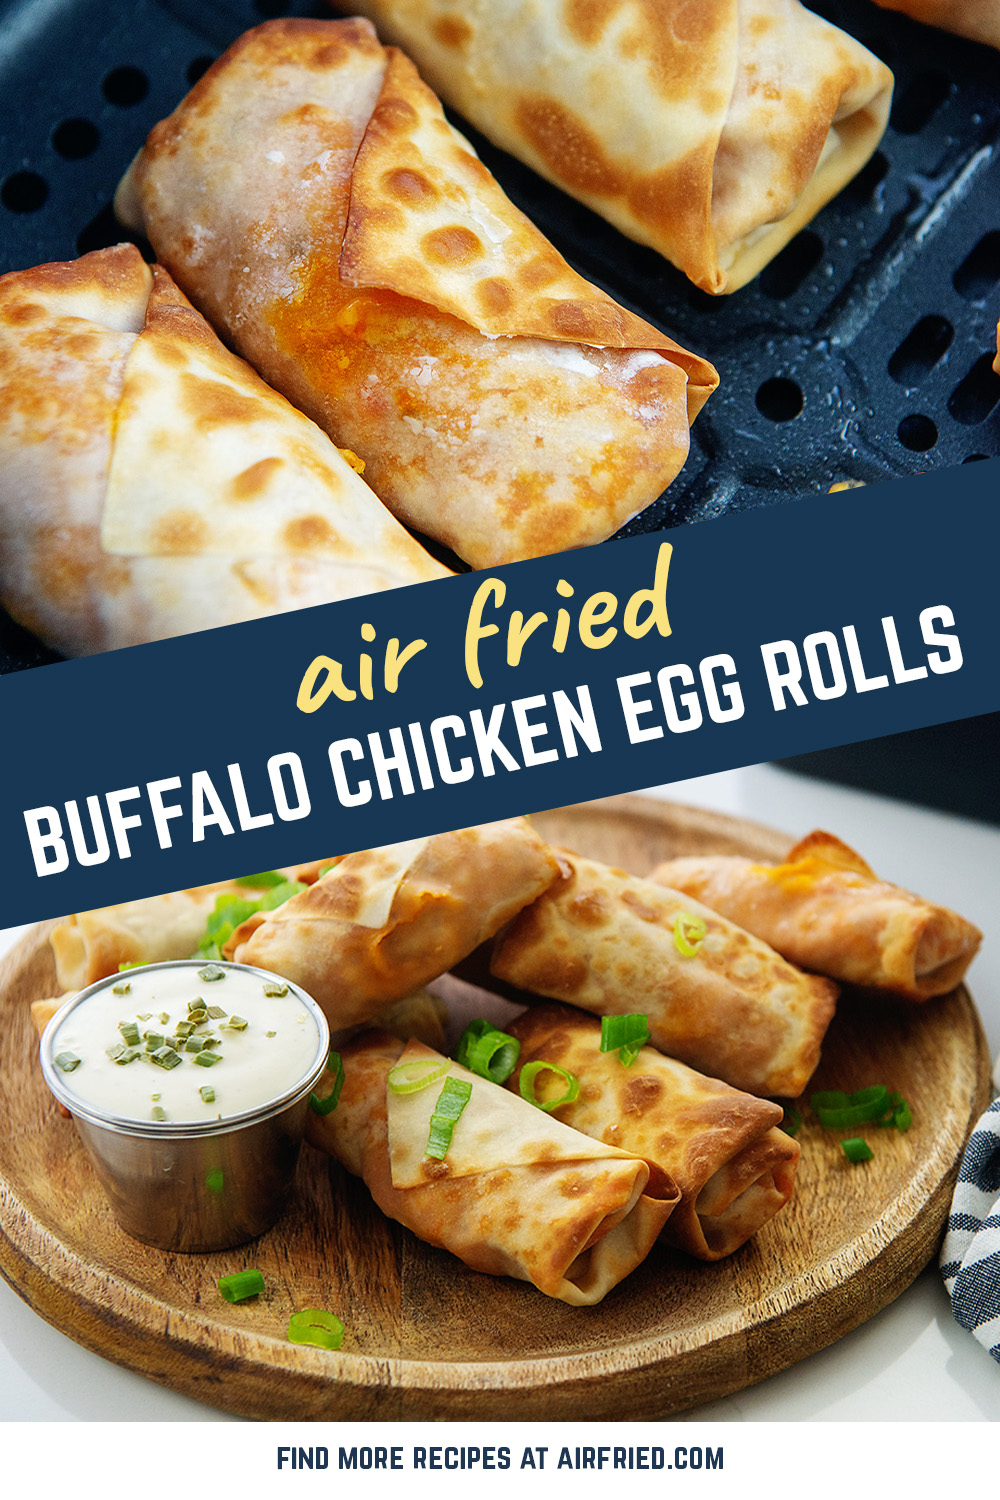 These mild buffalo chicken egg rolls are crispy on the outside and great for dipping into ranch dressing!